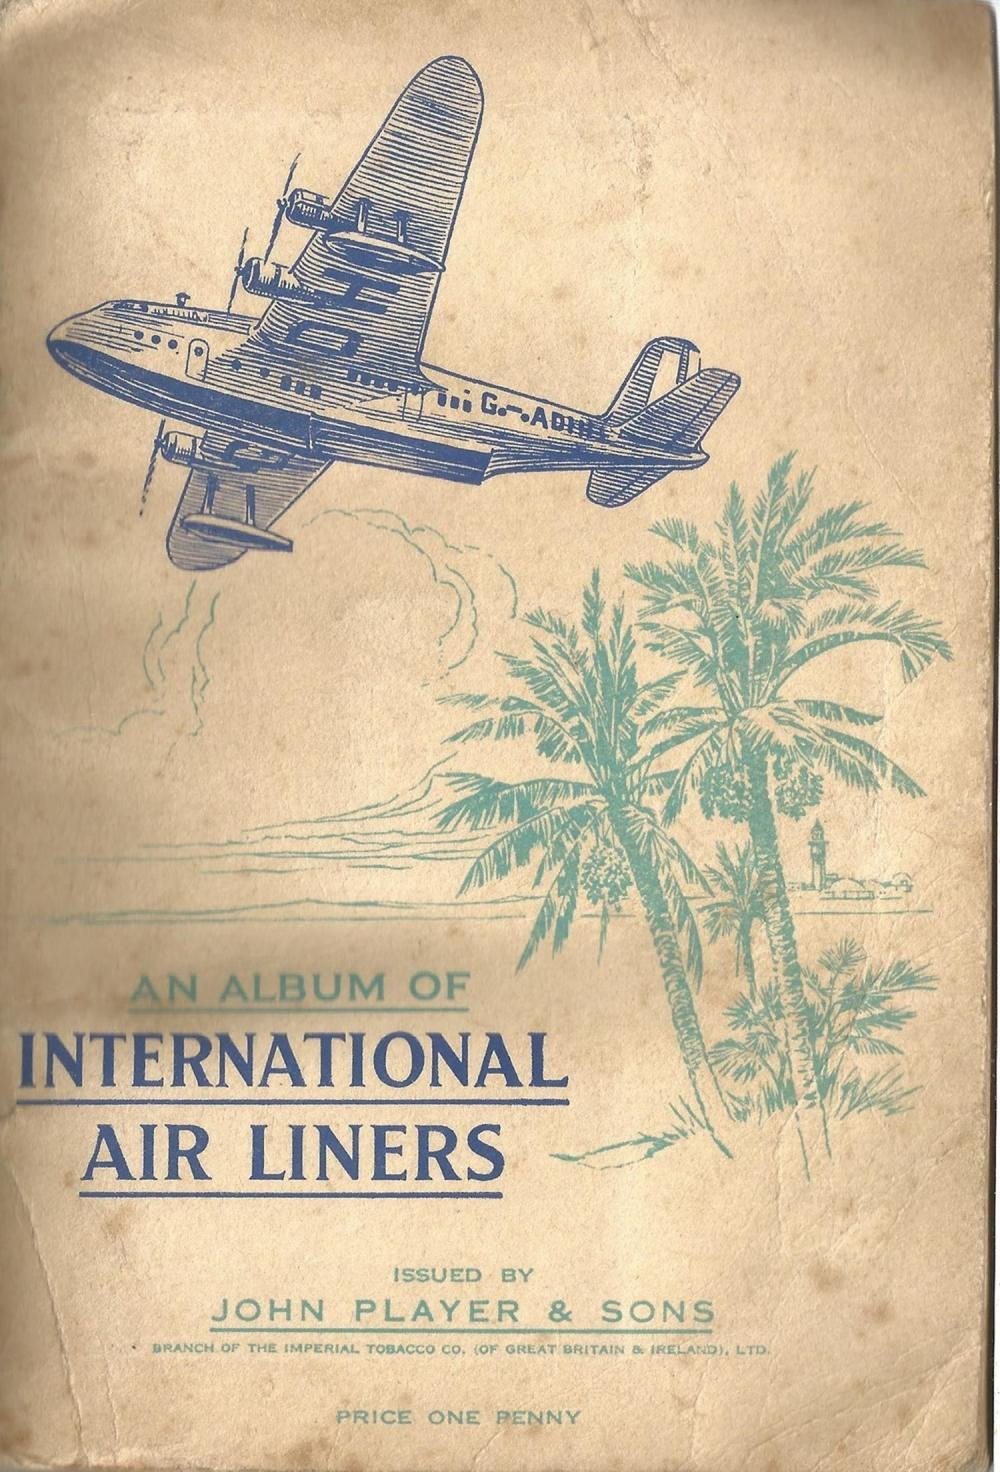 Player's Cigarette Cards, Album of International Air Liners, 1936, 50 cards. Good condition. We